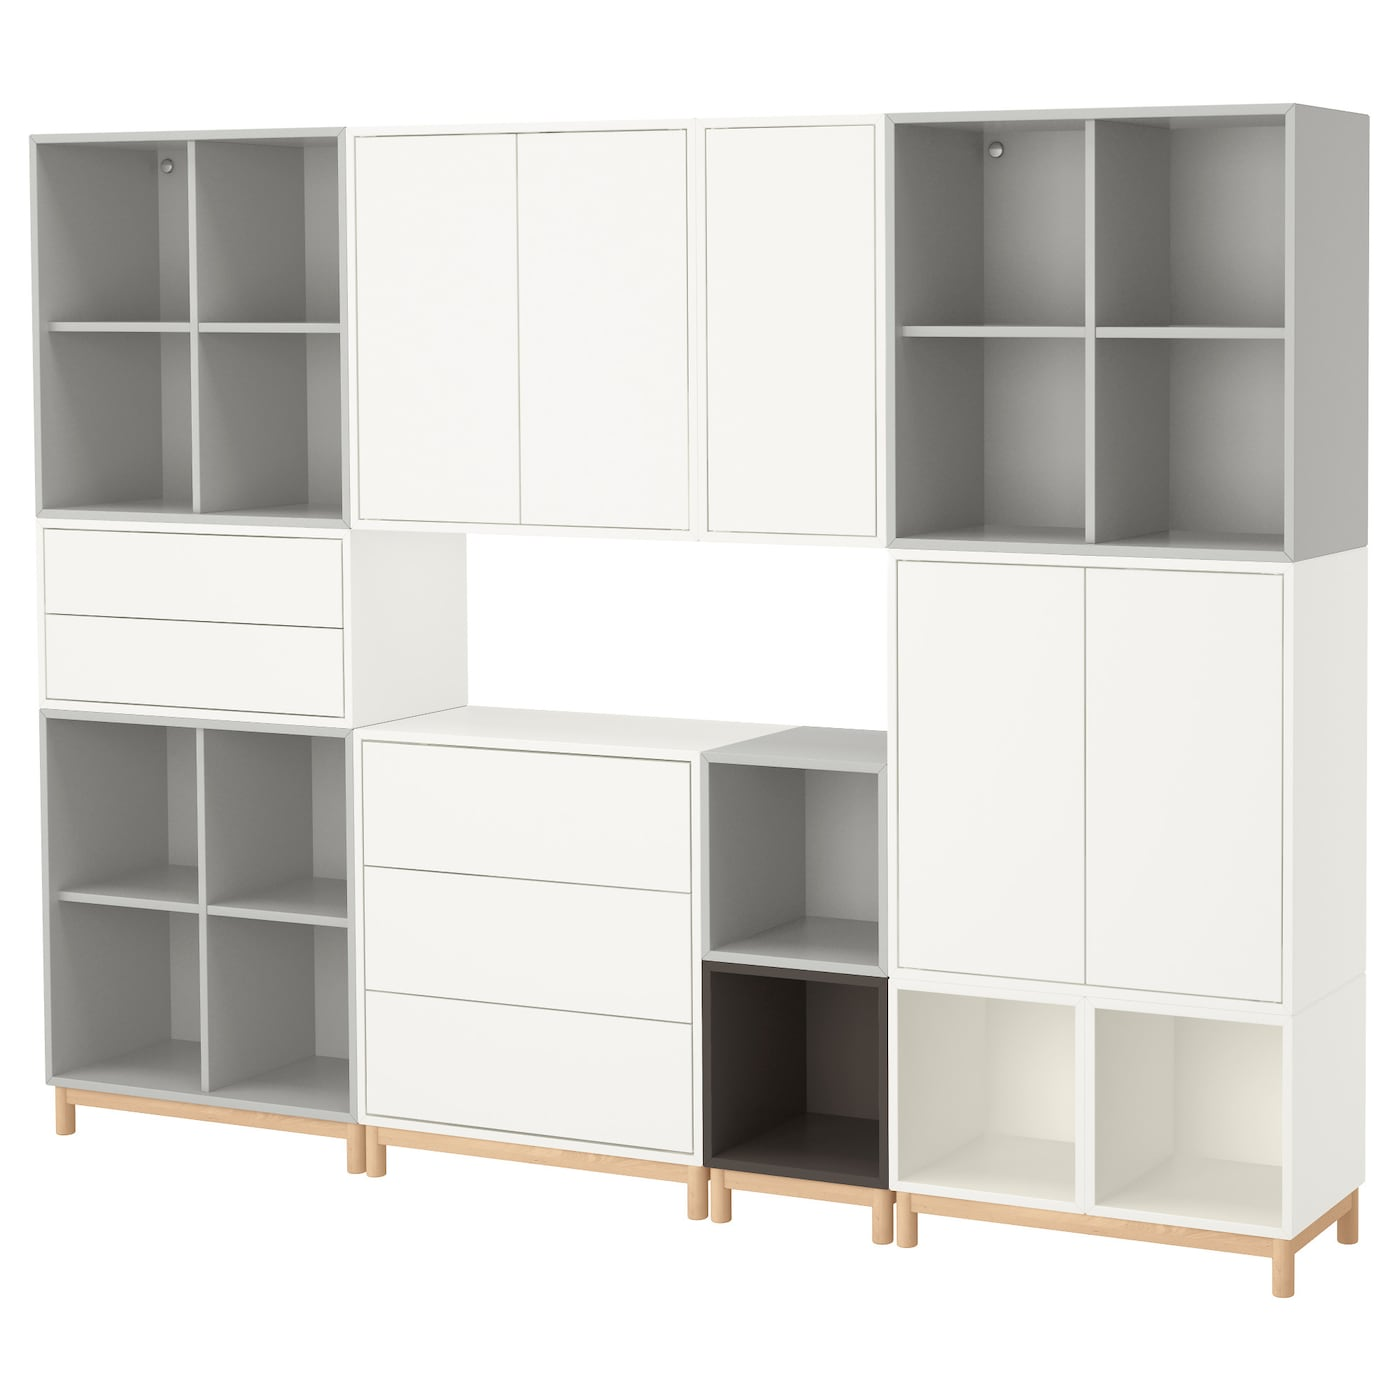 eket cabinet combination with legs white light grey dark grey 245 x 35 x 185 cm ikea. Black Bedroom Furniture Sets. Home Design Ideas